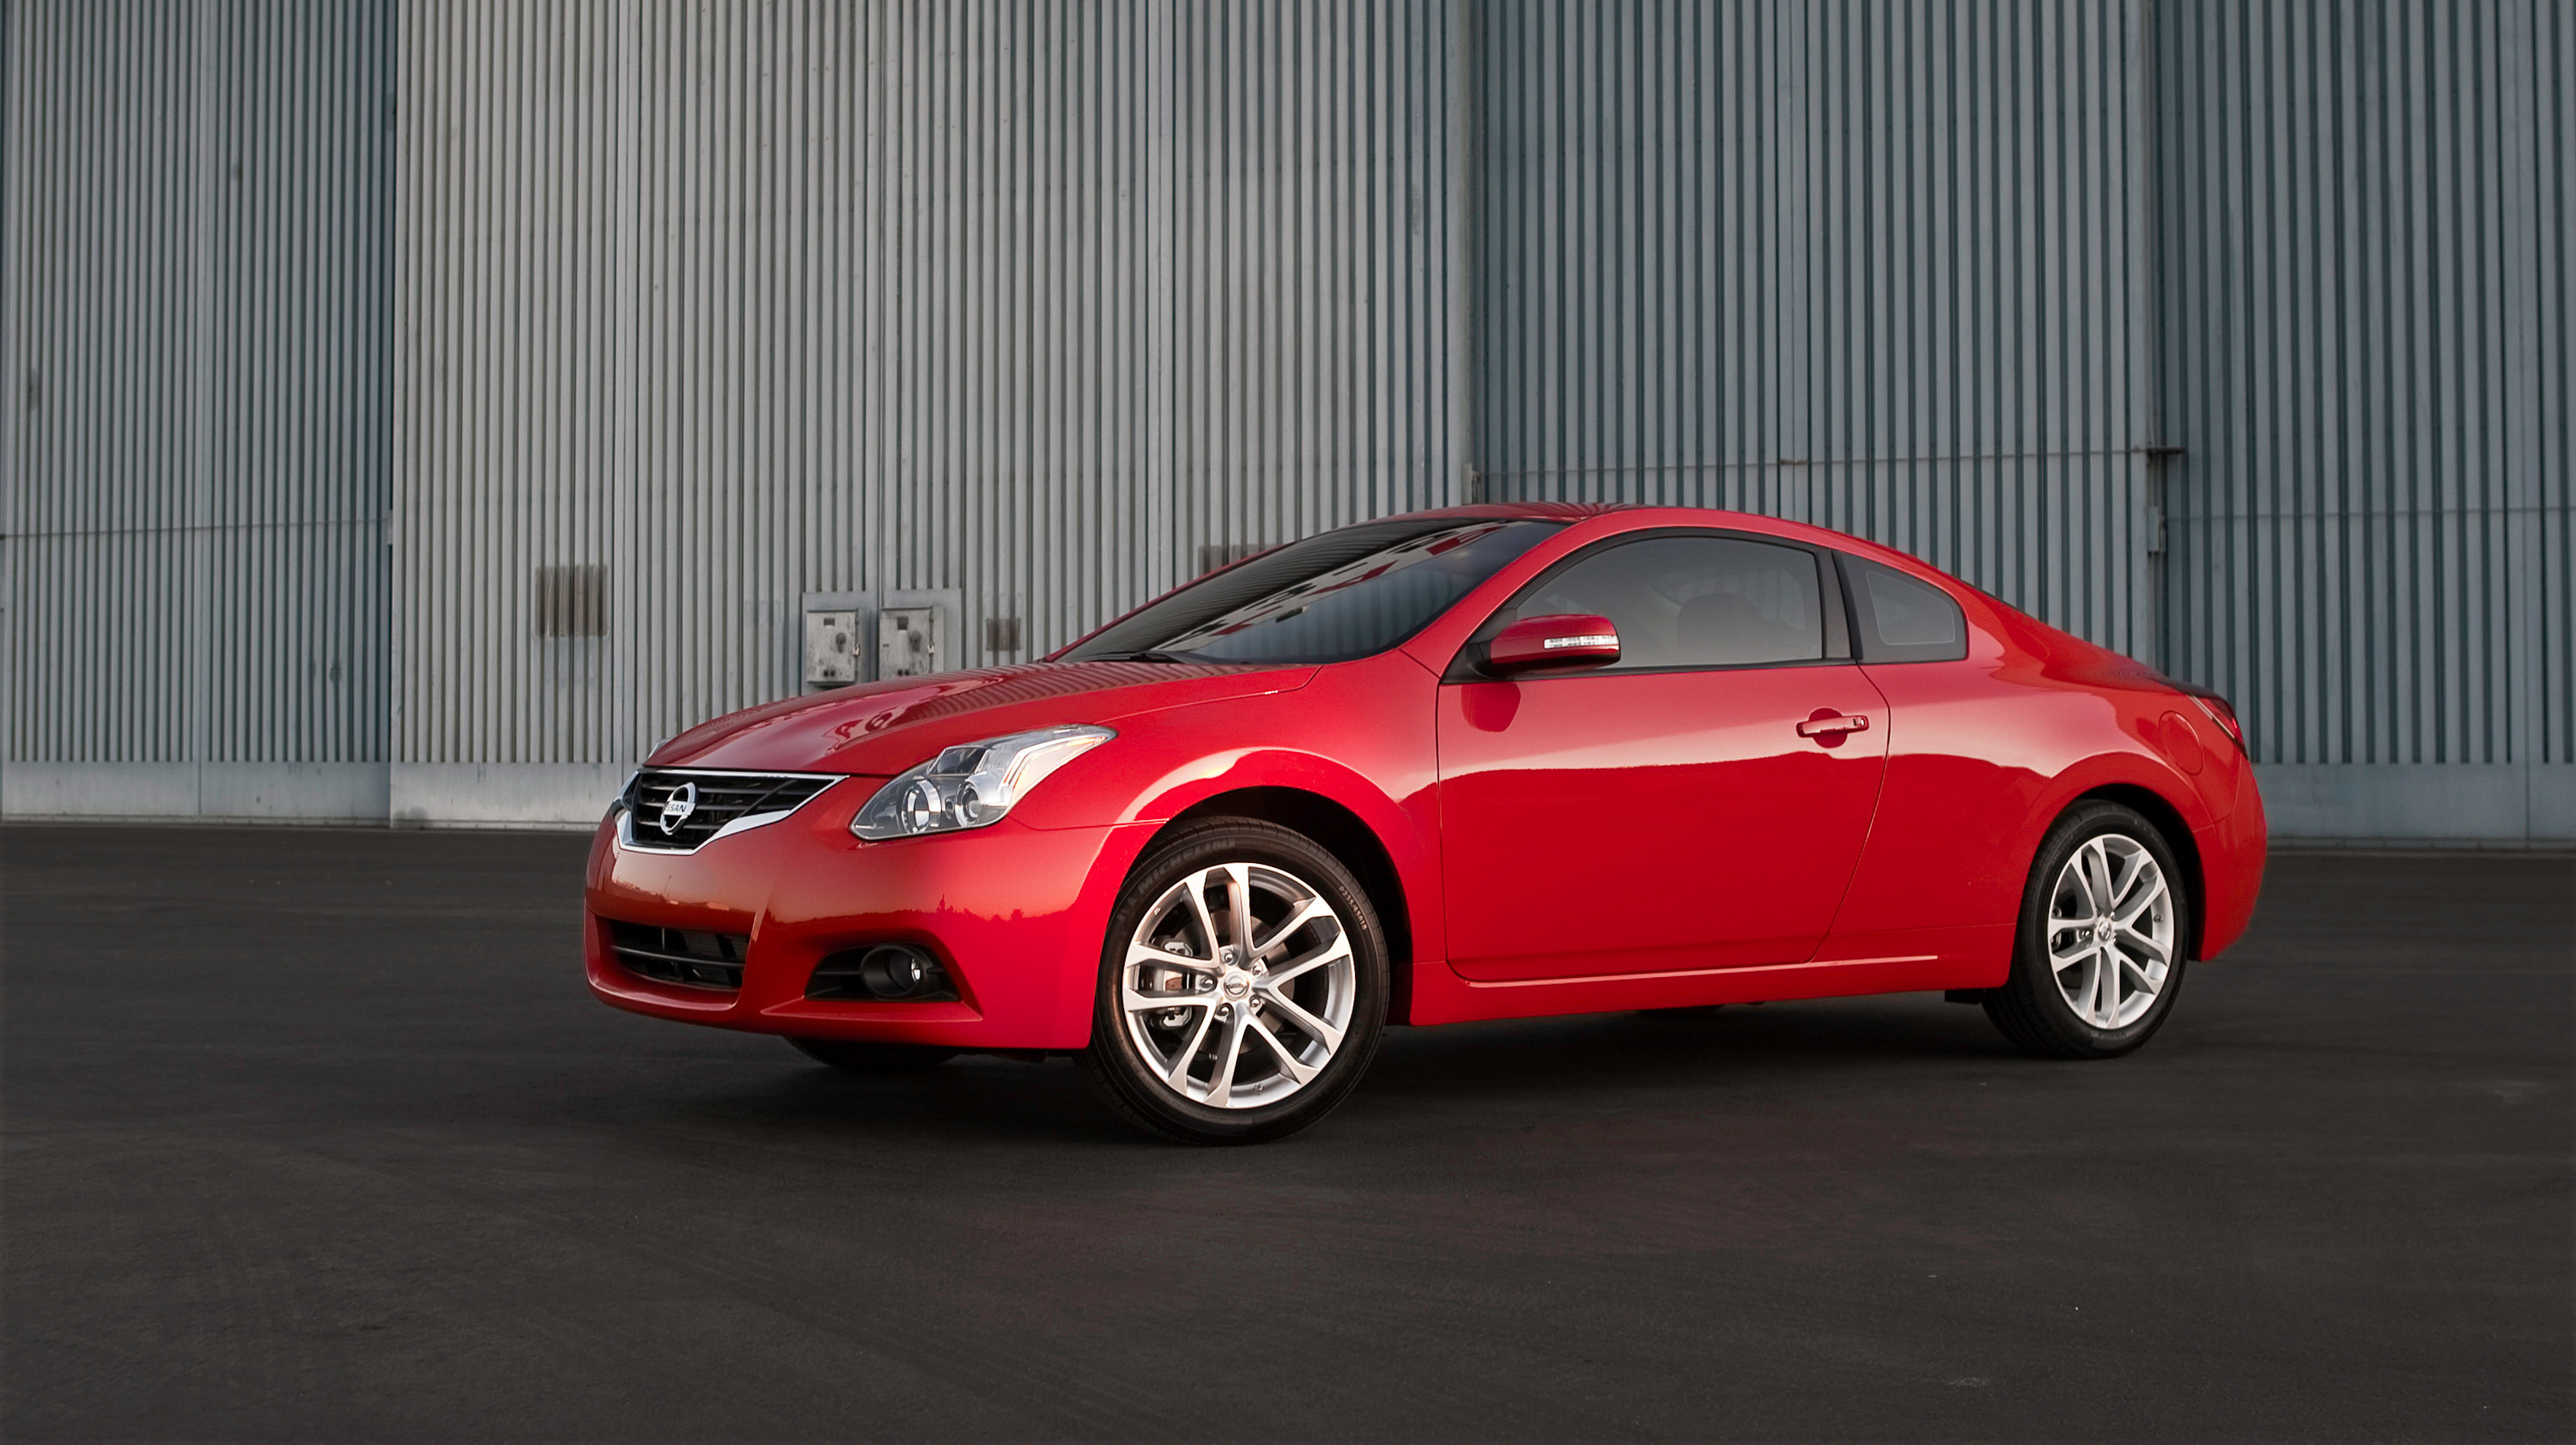 2010 nissan altima gets new look and features. Black Bedroom Furniture Sets. Home Design Ideas